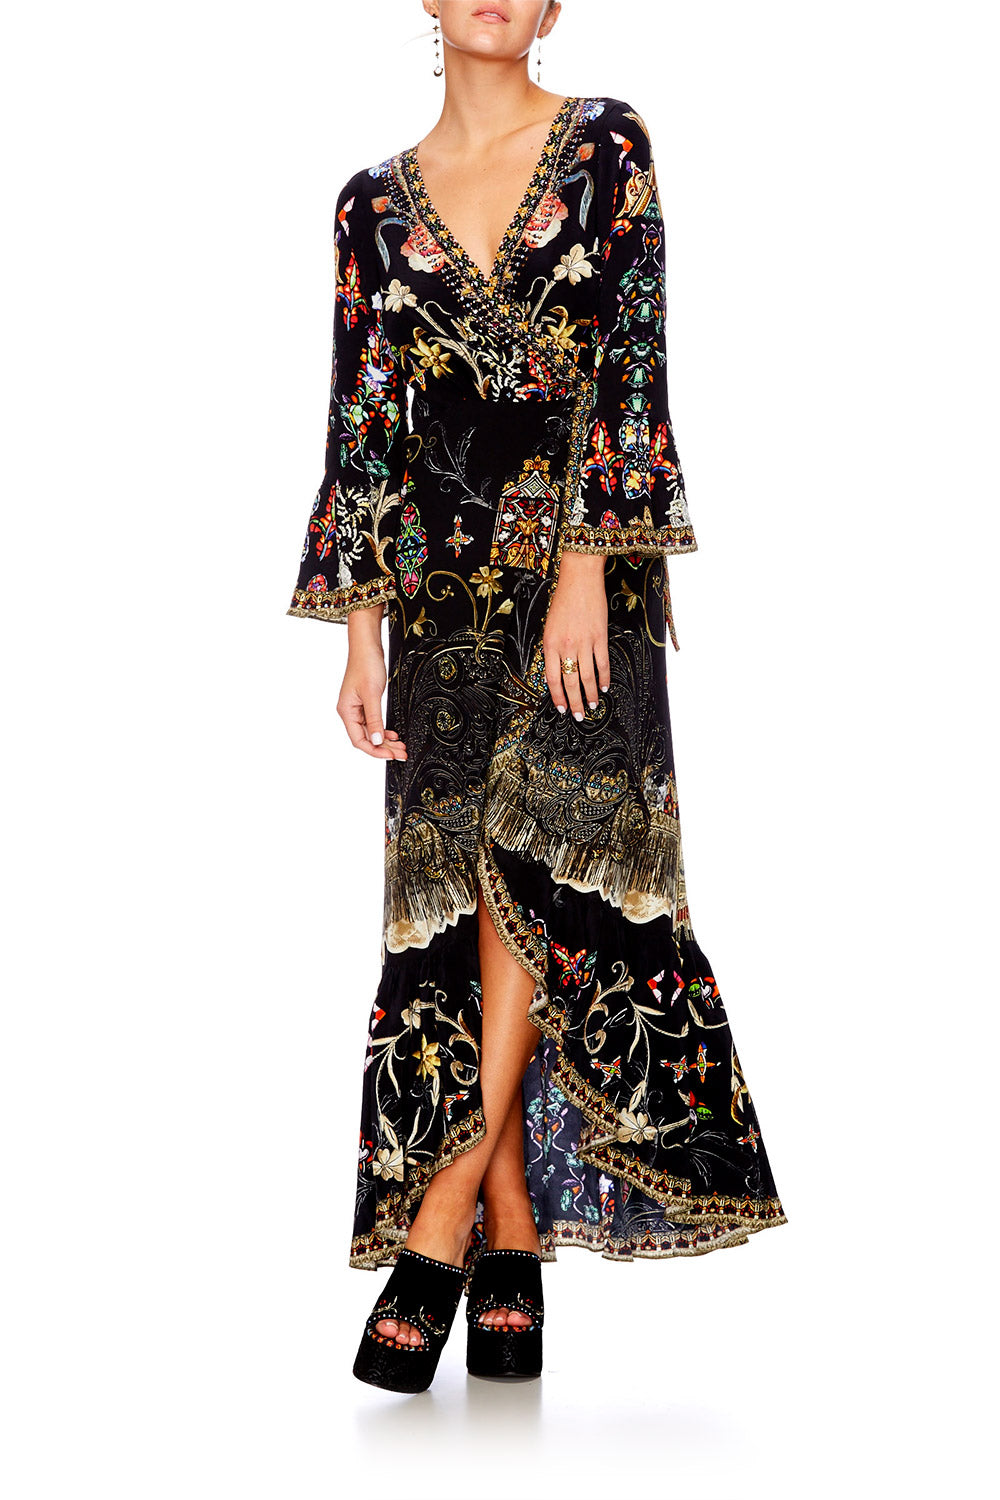 DANCING IN THE DARK LONG SLEEVE WRAP DRESS